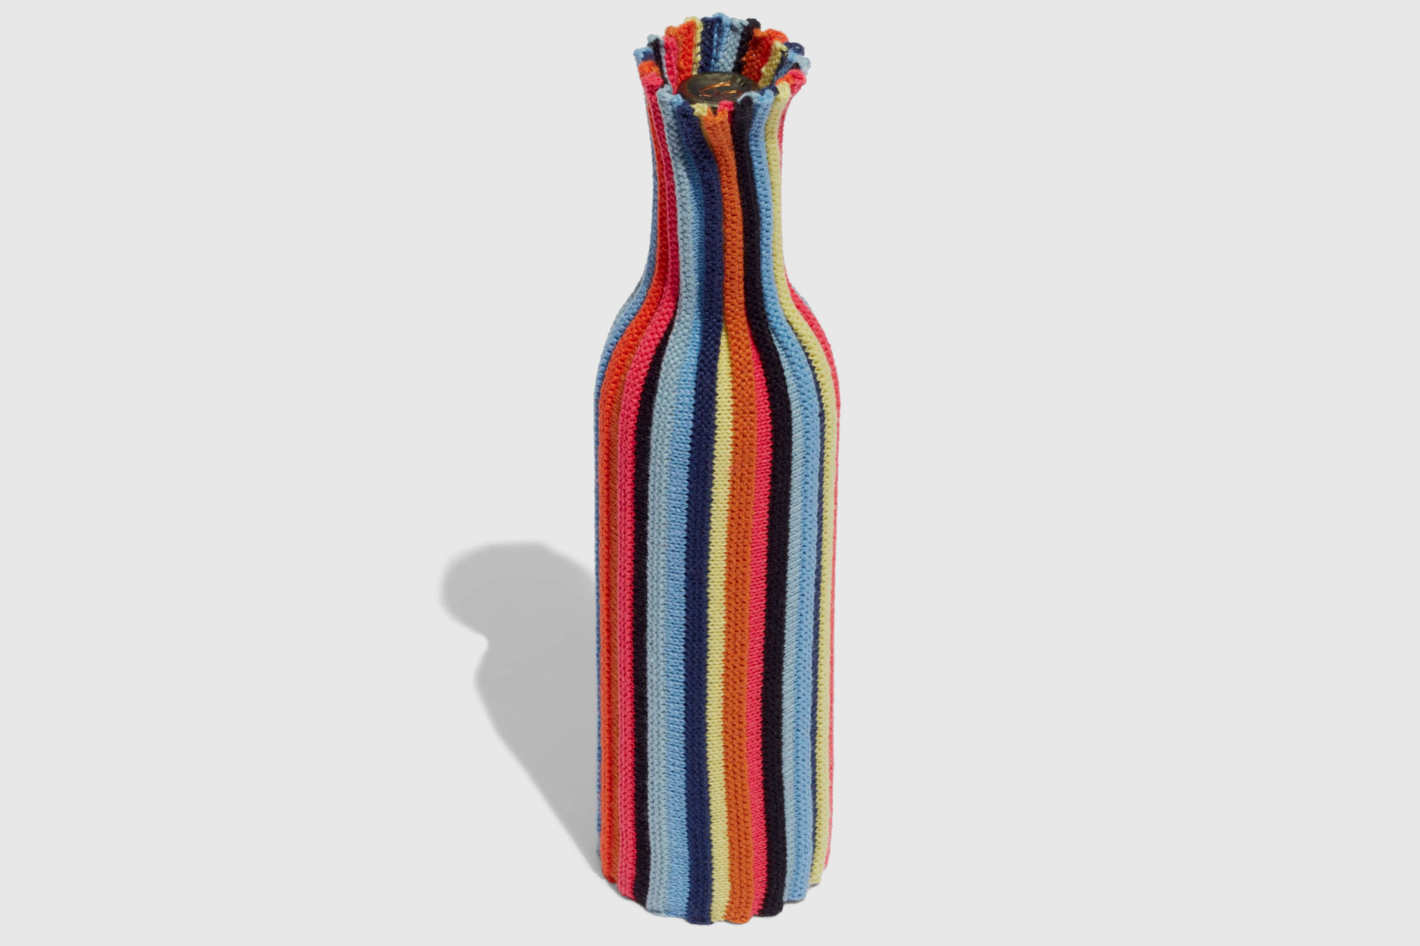 Verloop Knit Bottle Sleeve